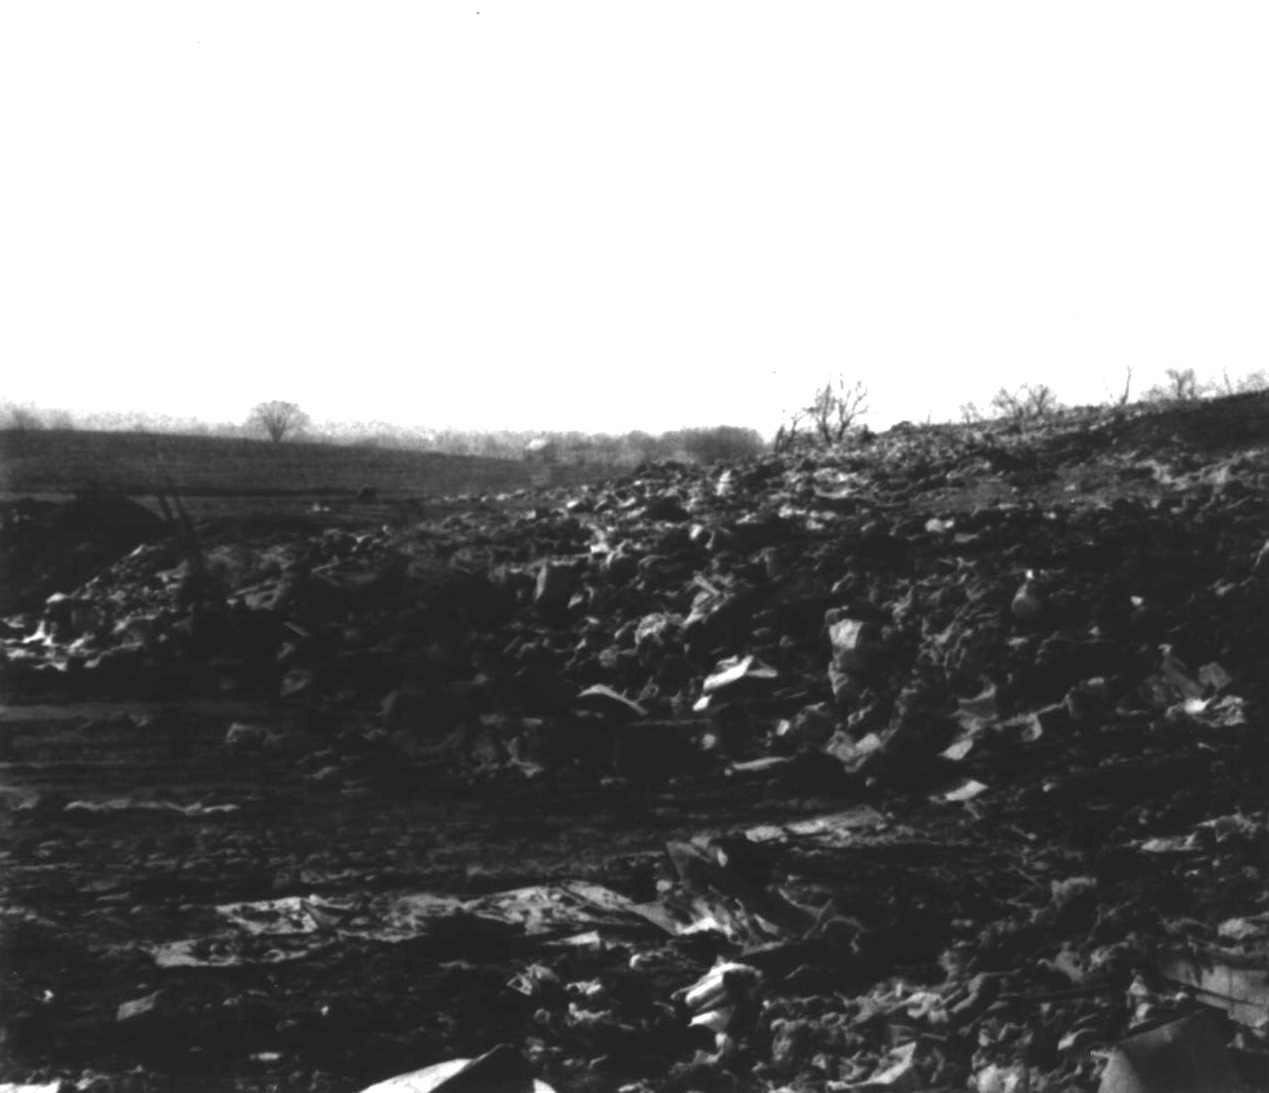 The Regional Planning Commission early landfill